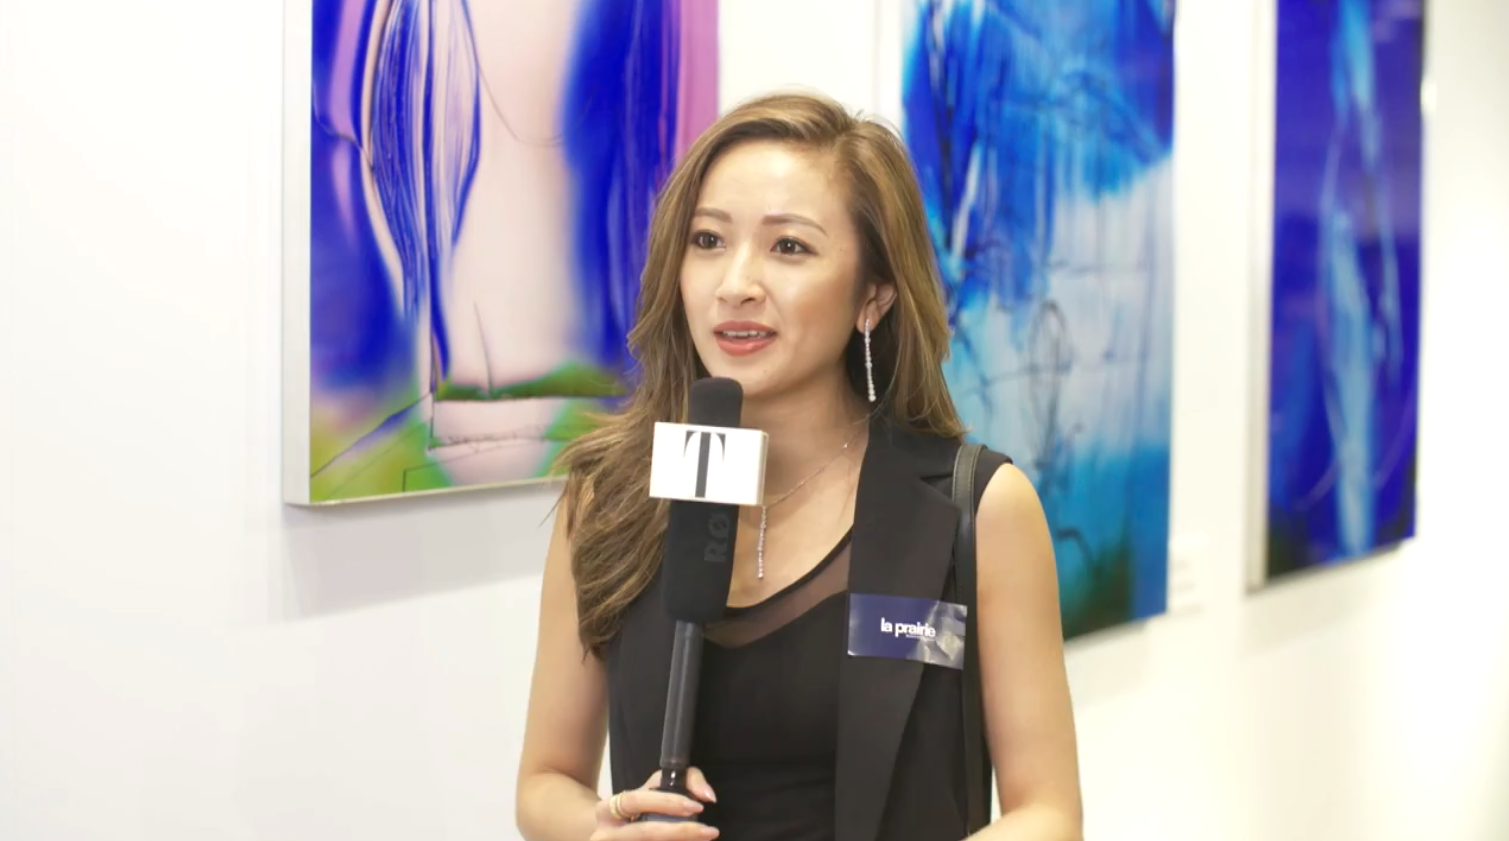 Video: An Exclusive View On La Prairie's The Masterpiece Remastered Exhibition